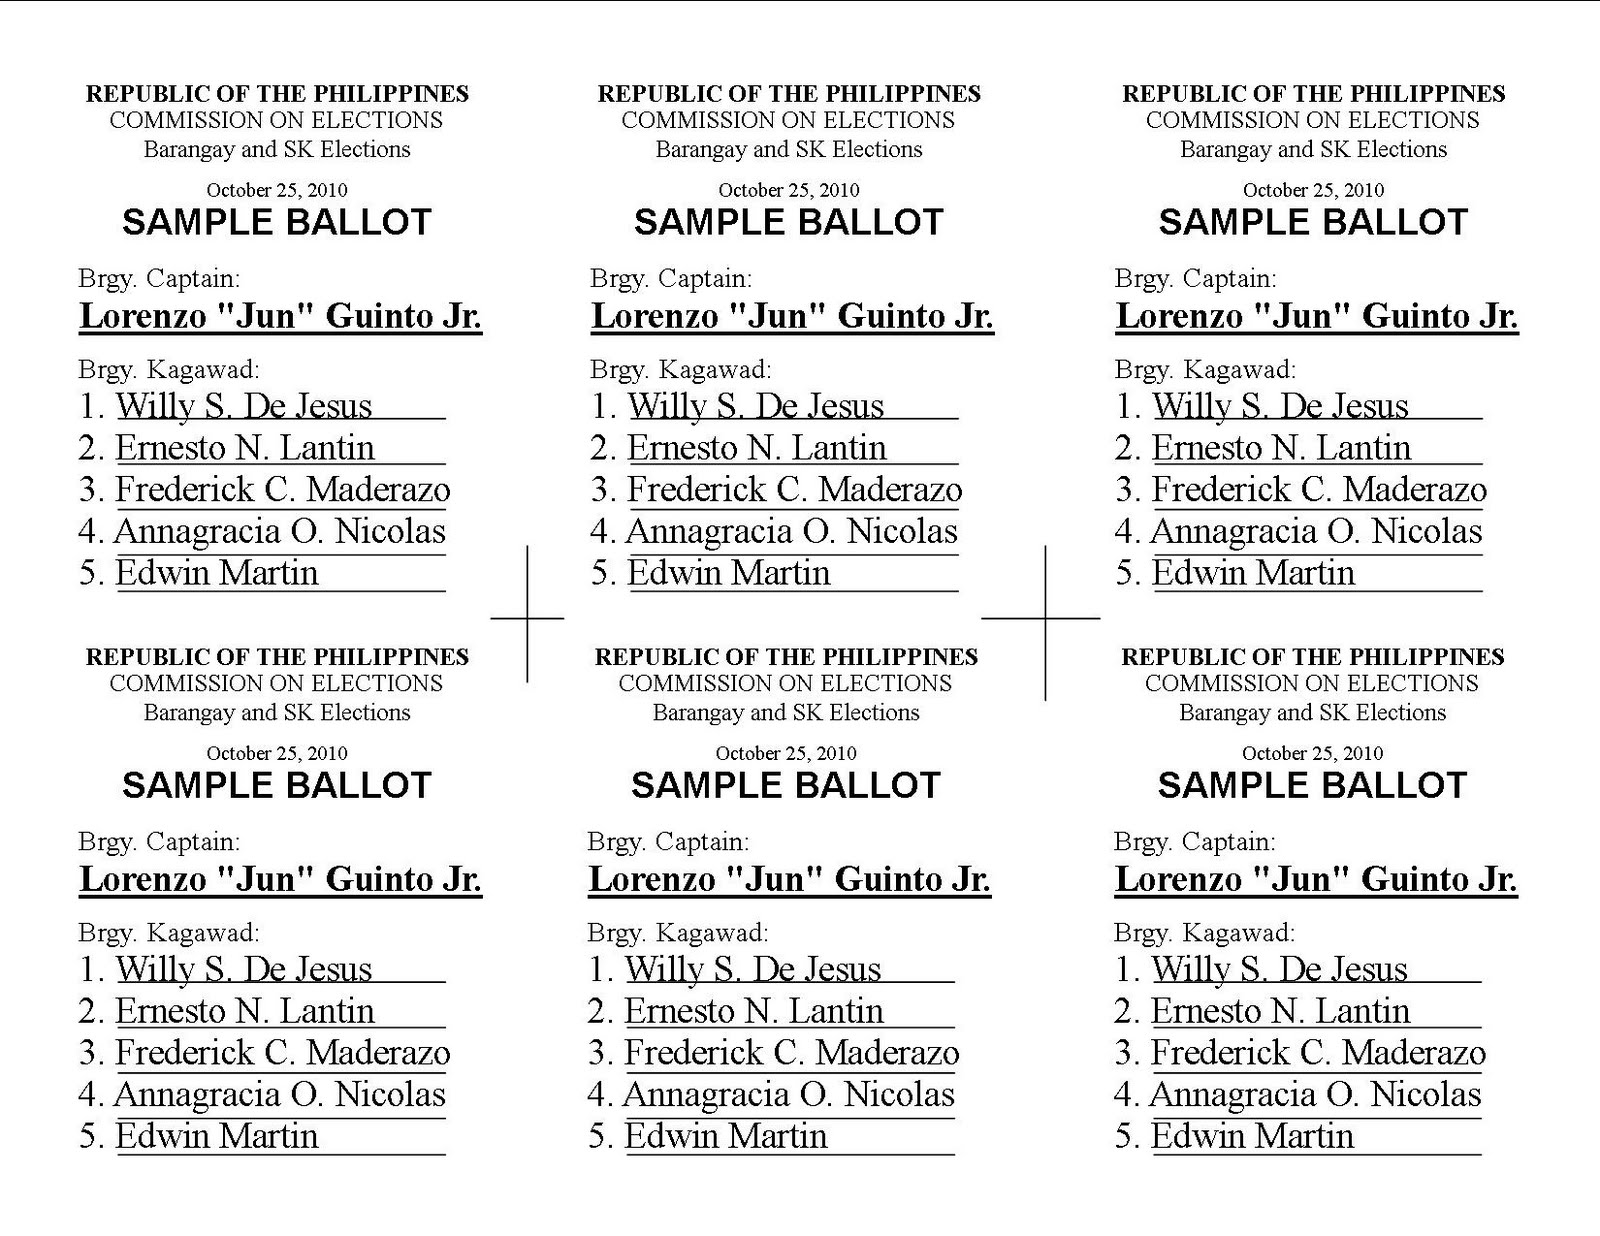 brgy  election sample ballots http://sarisaringsaliksik.blogspot.com/2010/10/copy-of-sample-ballot-barangay-election.html